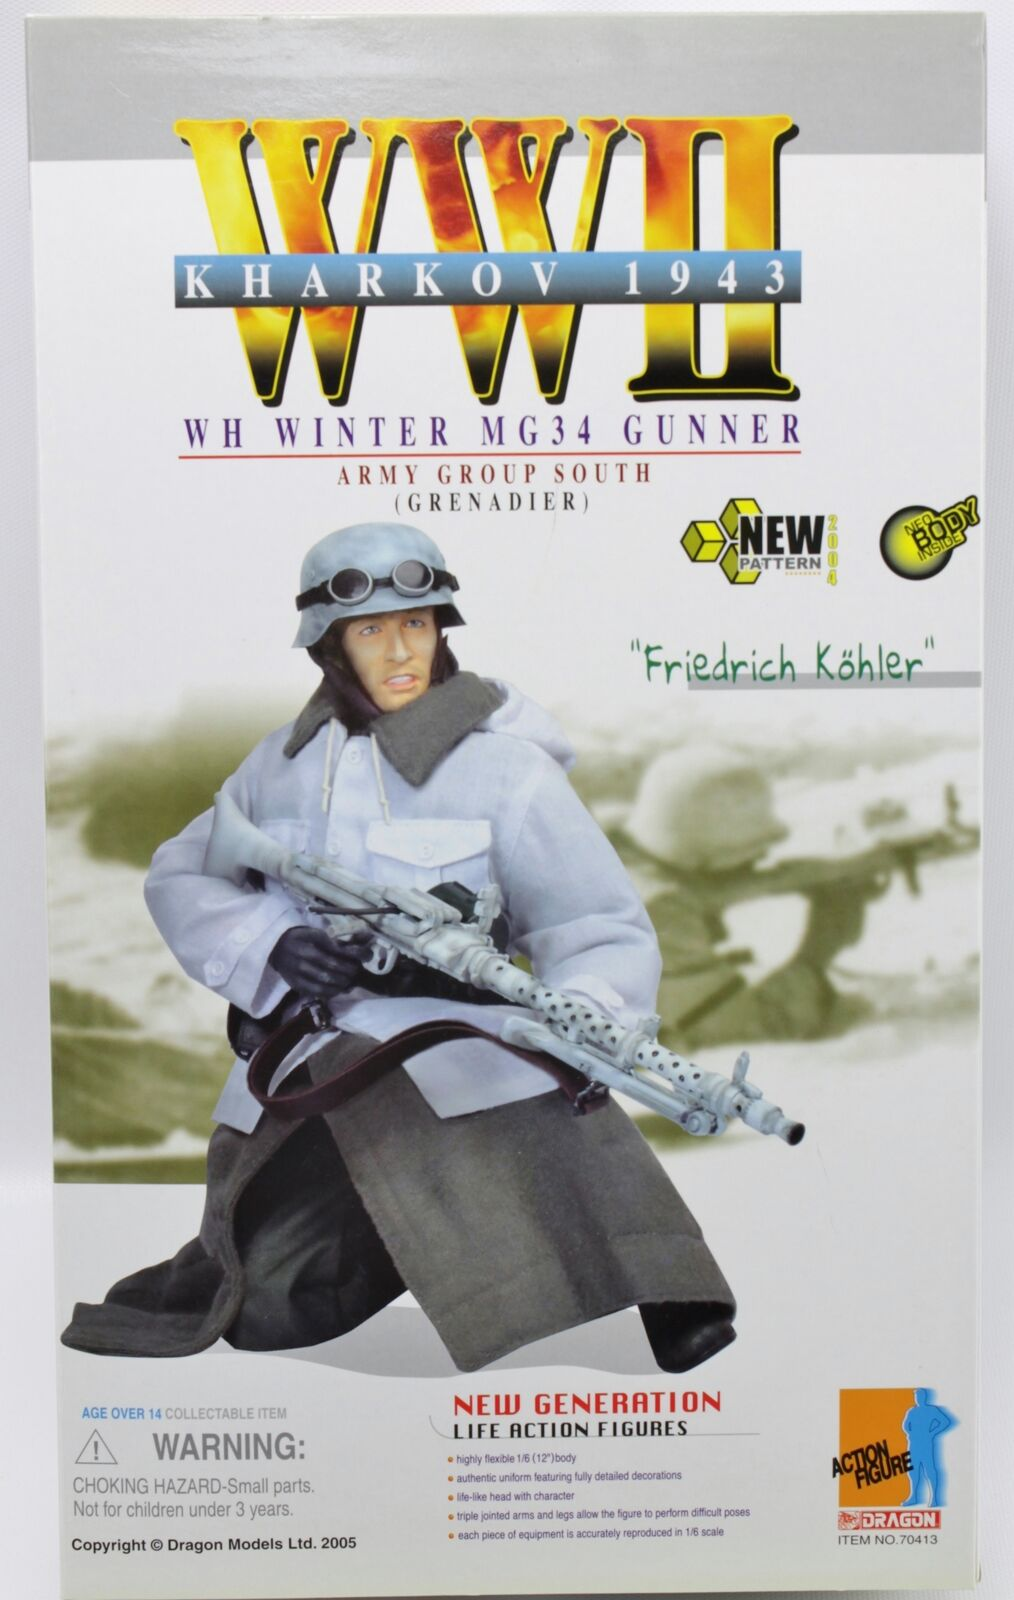 WWII WH Winter Winter Winter MG34 Gunner Army Group South Grenadier Kharkov Dragon 12  cifra 2ef0db